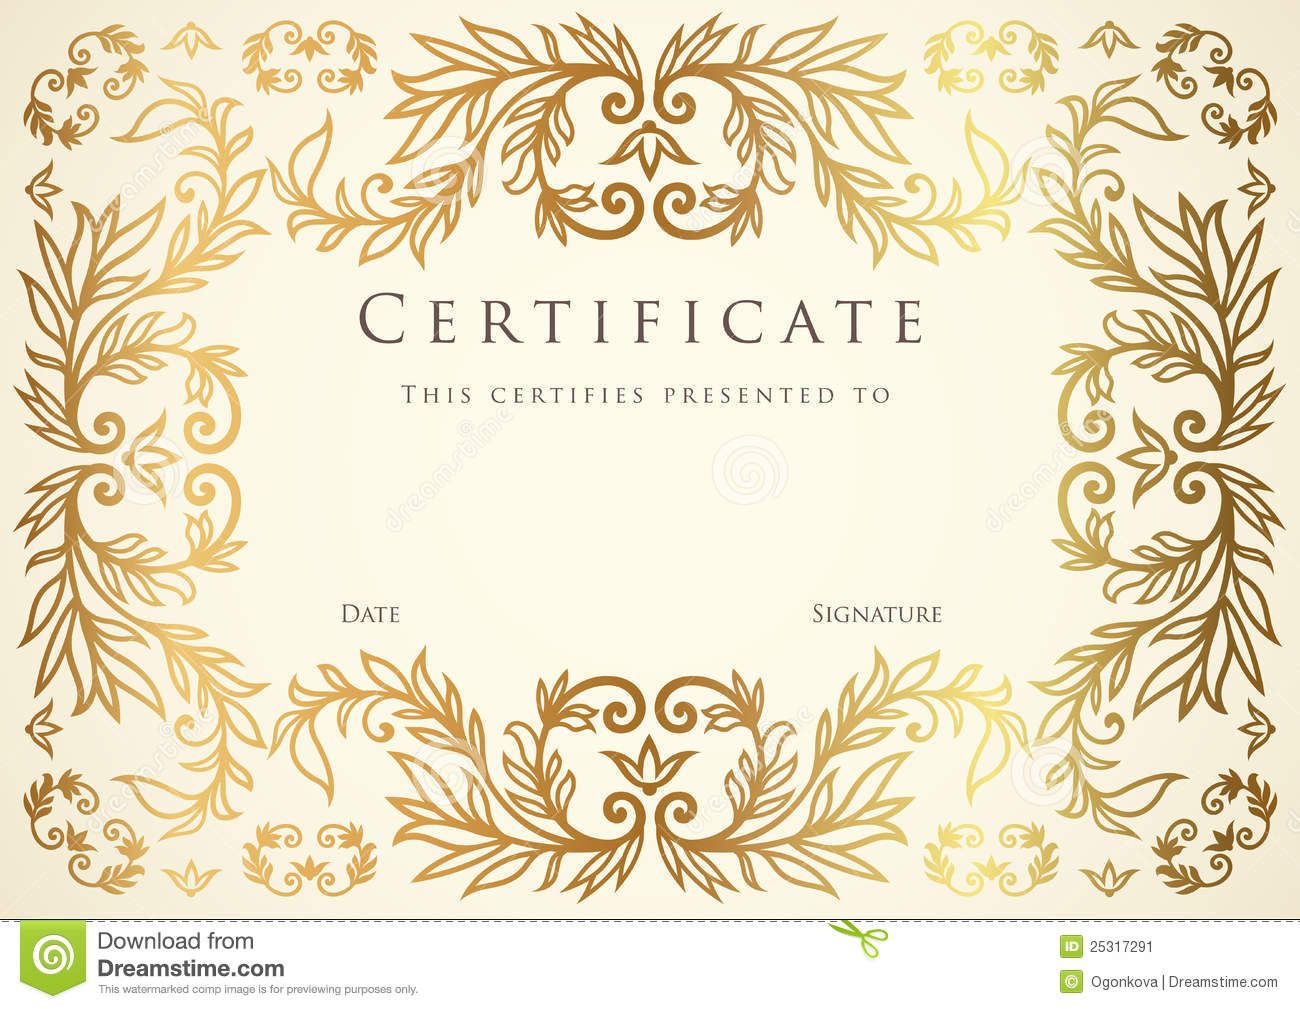 Reiki Certificate Templates To Download Wallpaper